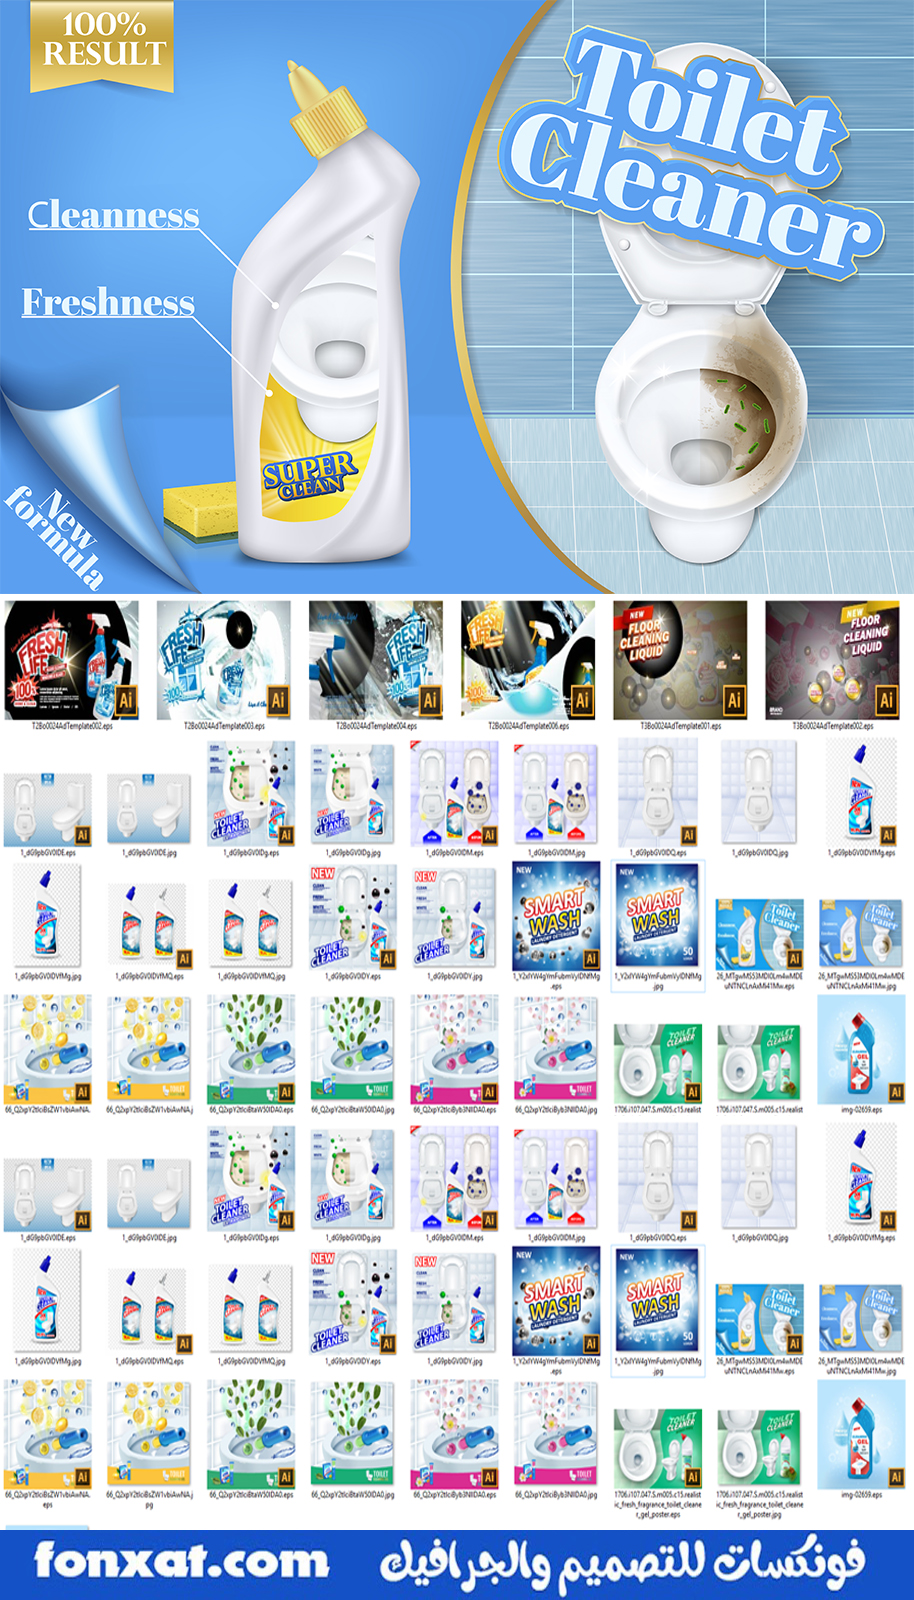 Detergent.Package.In.3D.Vector.Illustration.For.Advertising.eps-jpg